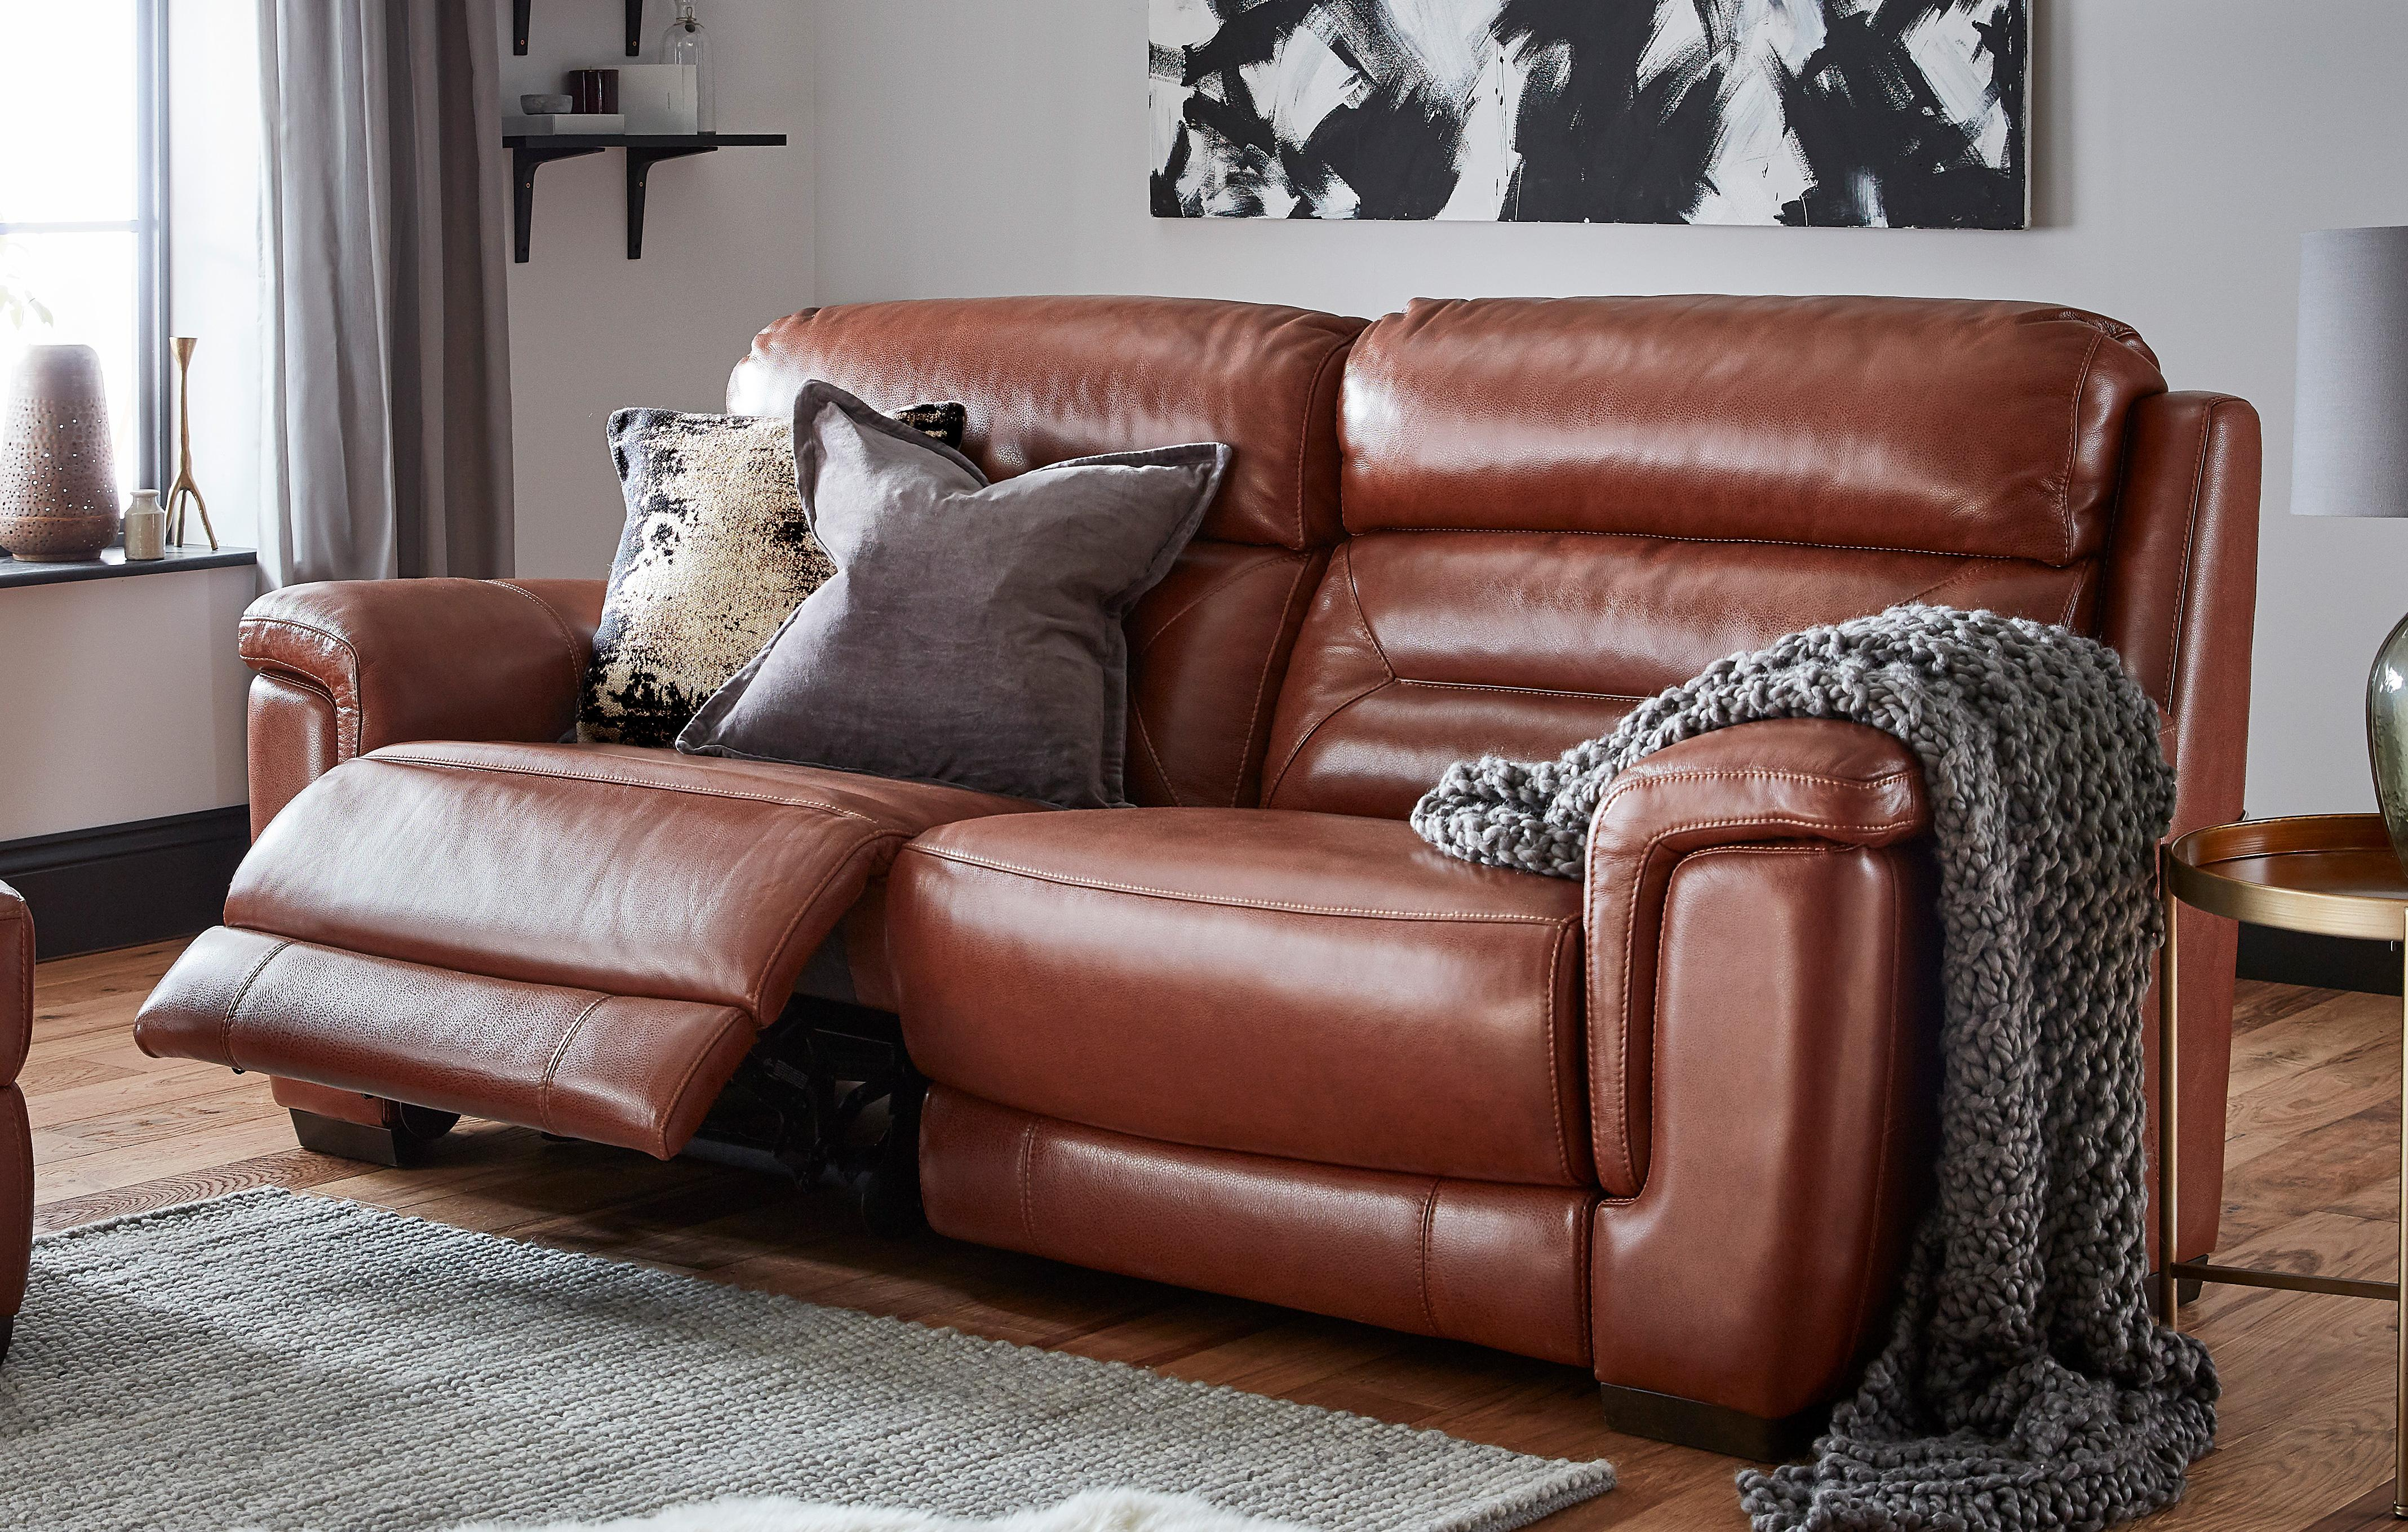 Dfs 2 Seater Leather Recliner Sofa | Baci Living Room